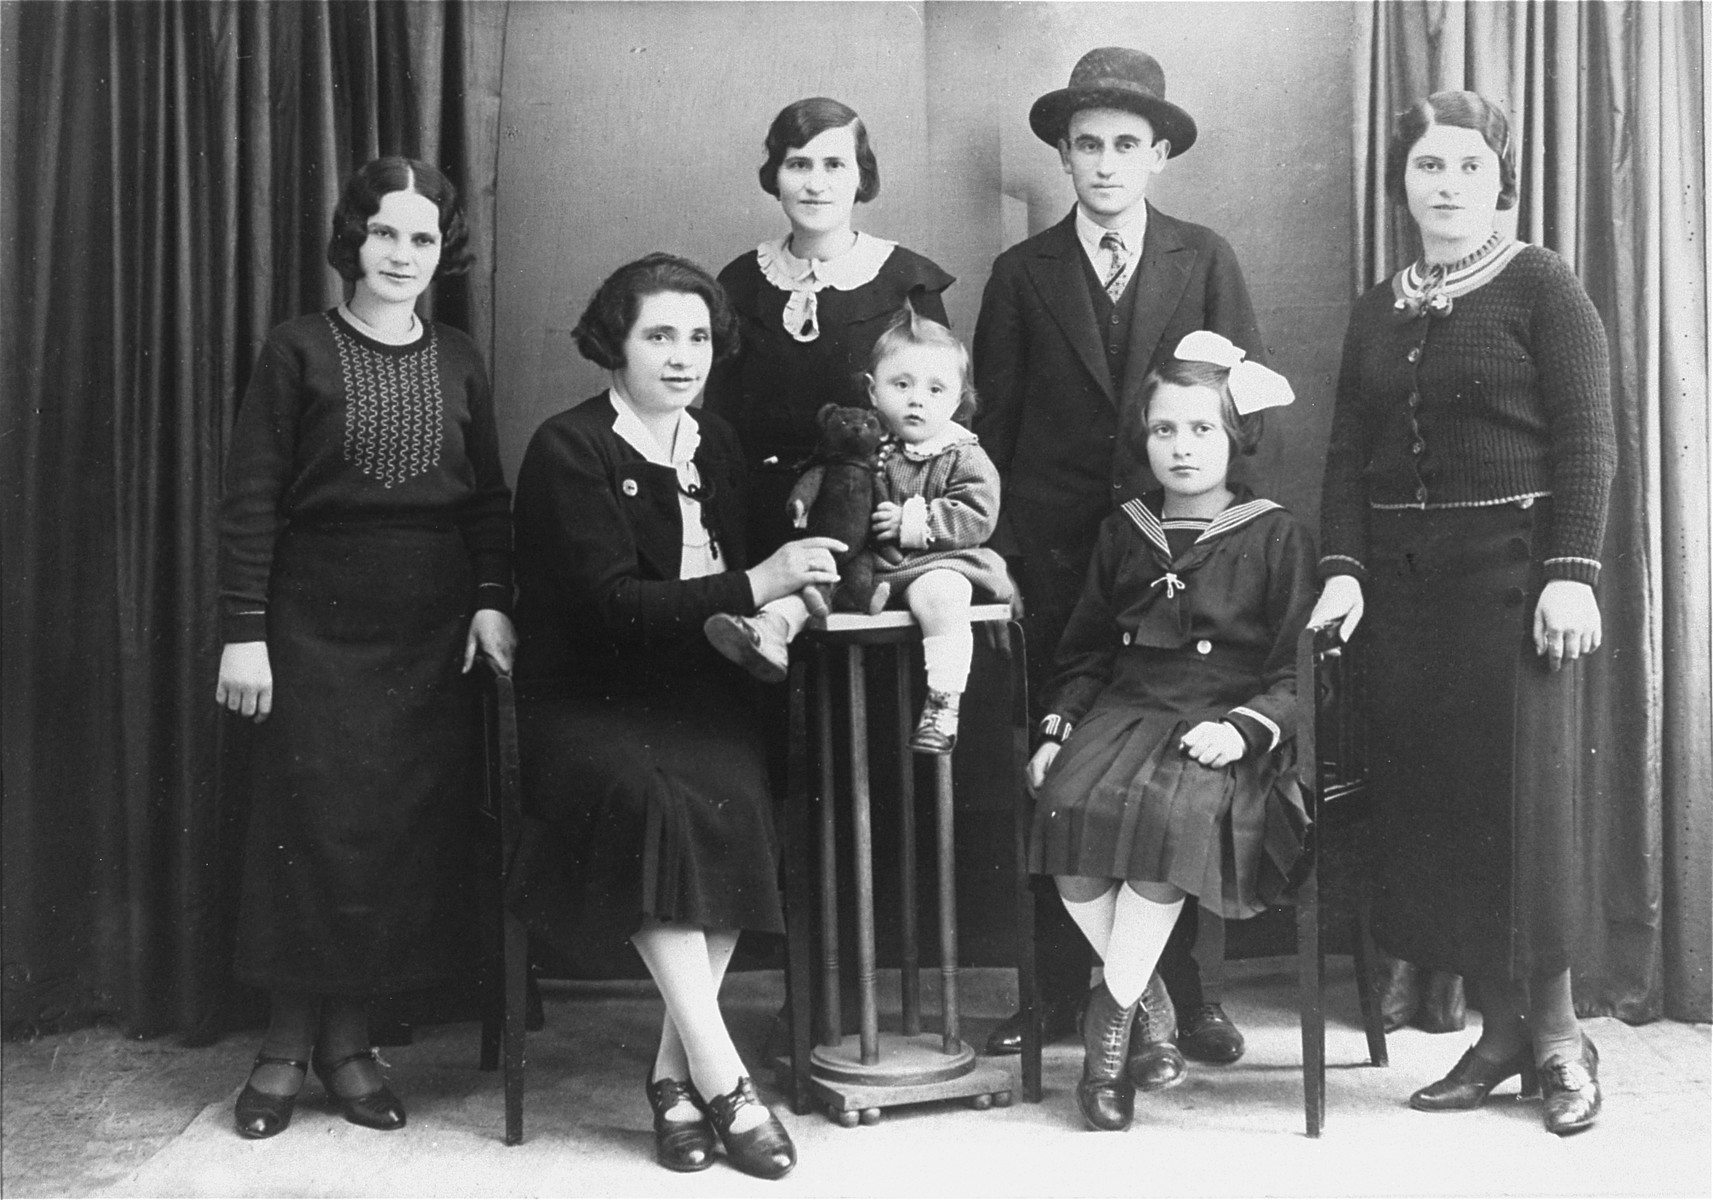 Studio portrait of the Englander family, taken on the eve of Lillian's emigration to the U.S.    Pictured (from left to right) are: Rozi, Ettela (Adolph's wife), Anush (standing), Ali, (Adolph's youngest son); Magda (Adolph's daughter), Shlomi (standing) and Lillian Englander.    Shlomi Englander died soon after this portrait was taken.  Rozi went into hiding with her niece, Magda.  She was caught in 1942 and deported to Poland.  Anush was killed in 1942, along with her husband and child.  Adolph and Ettela Englander, together with their two children, Ali and Magda, were deported to Auschwitz in 1944.  Only Magda survived.